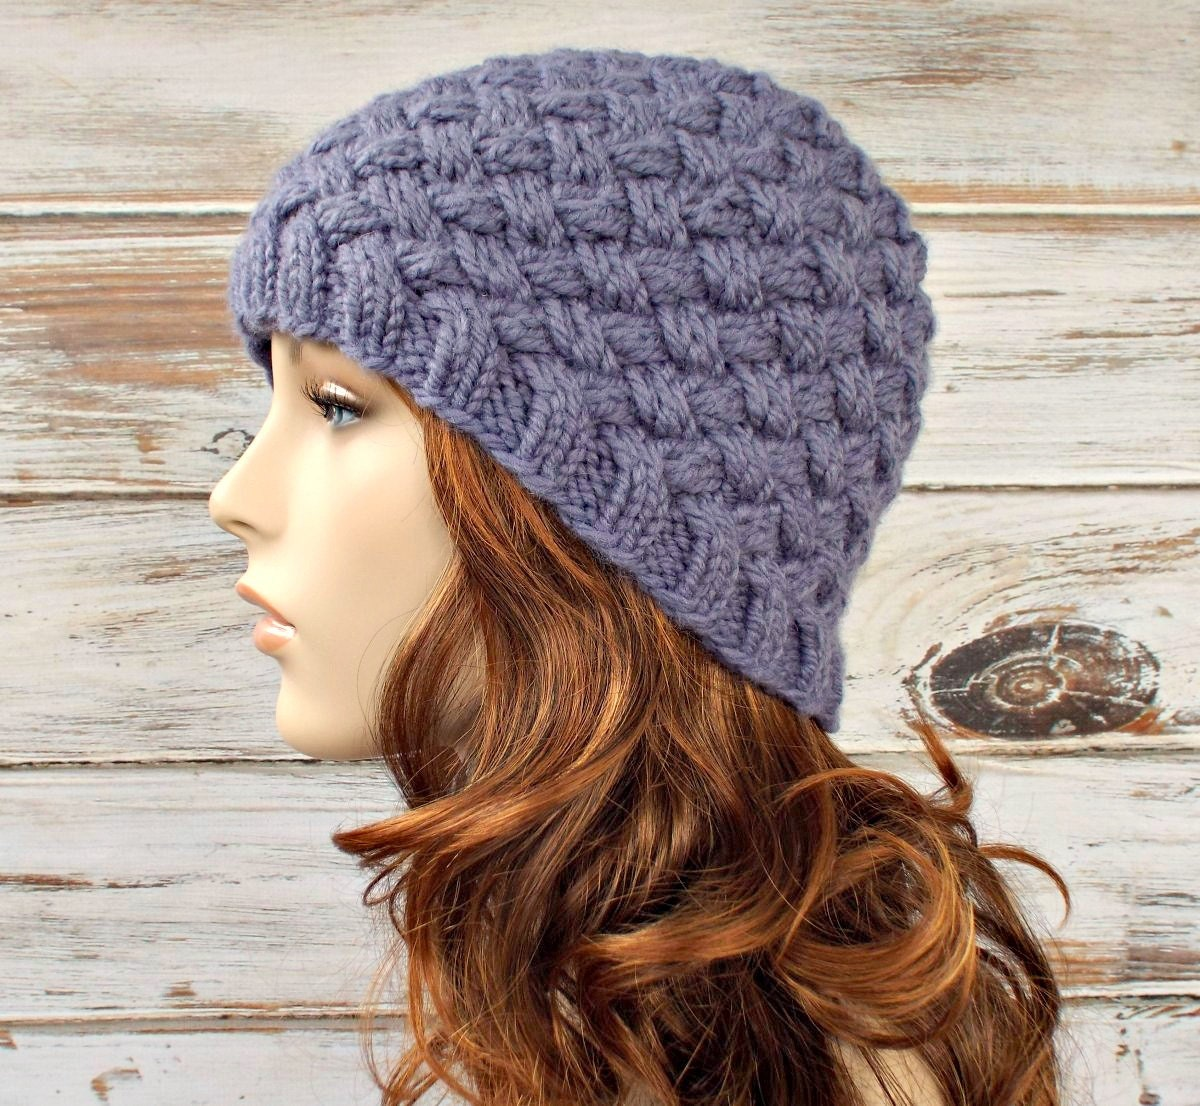 Knitting Hat Patterns For Women : Instant download knitting pattern womens knit hat